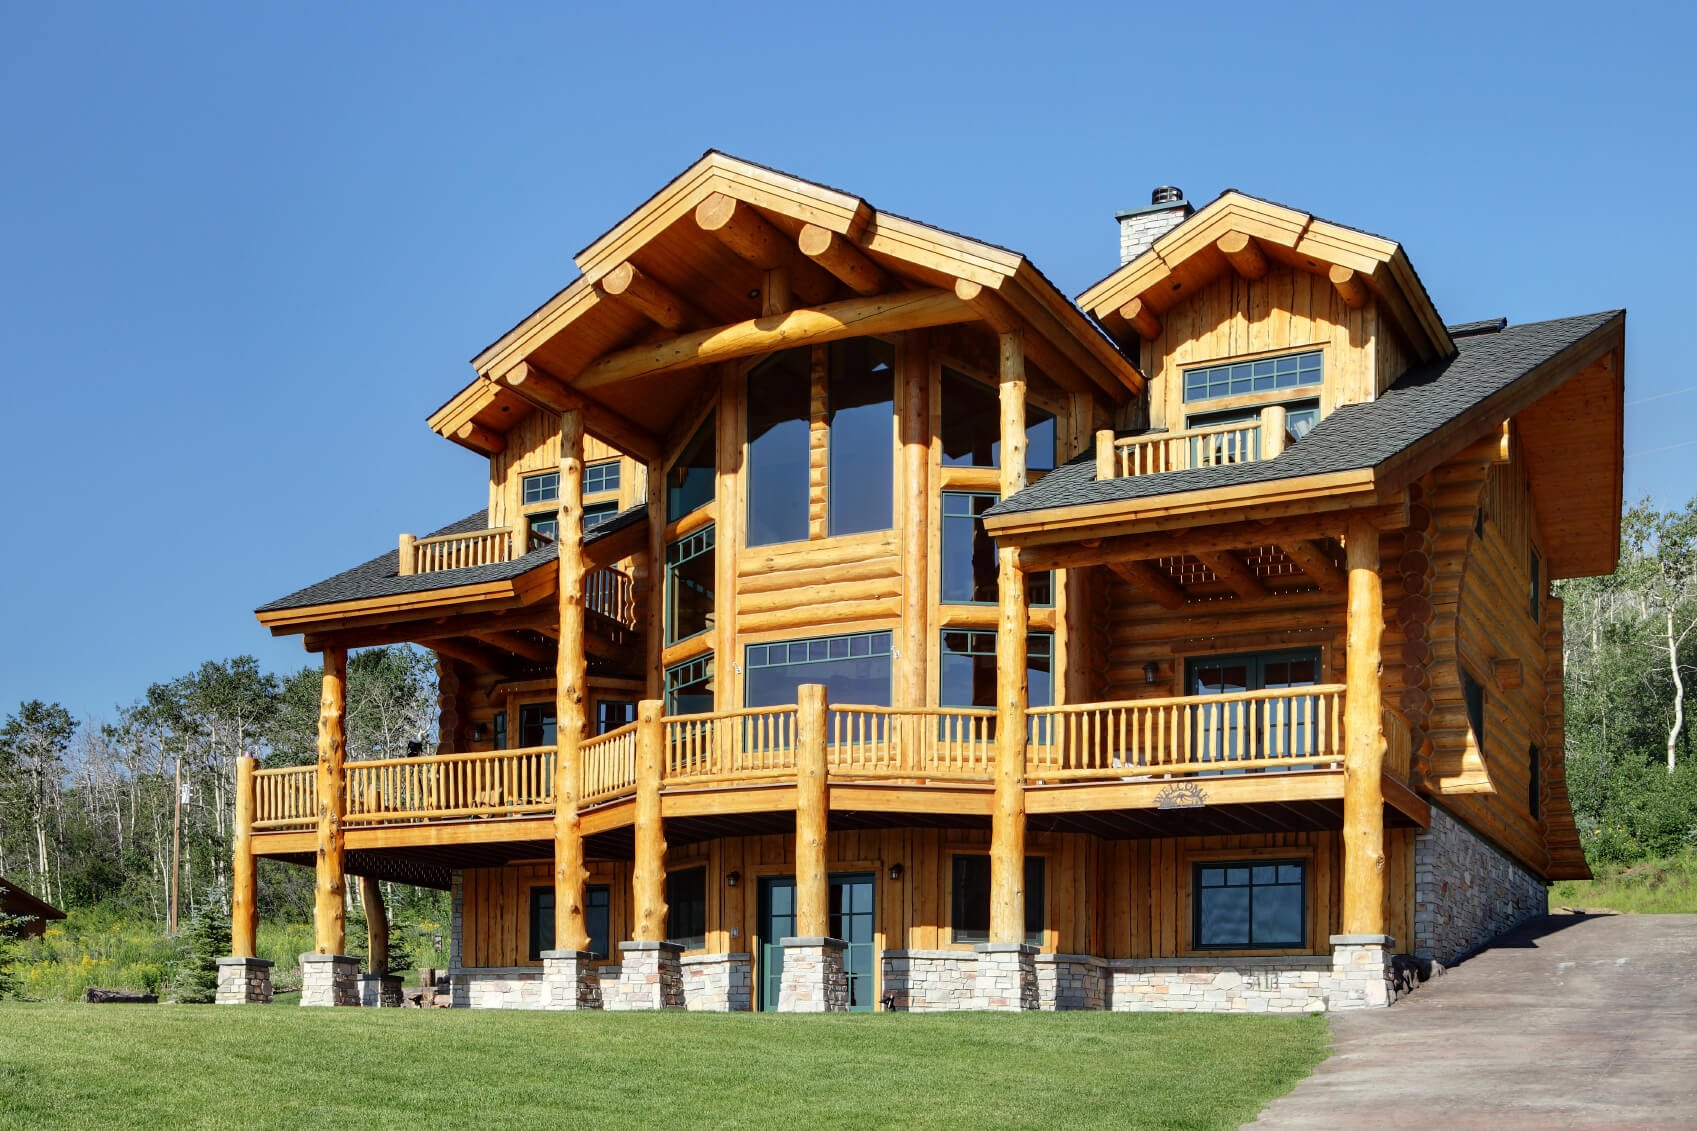 Split log siding is impressive on a house and offers instant rustic and cabin-like qualities. Typically made of cypress, cedar, redwood, or pine logs, split log siding is expensive and high-maintenance. It can be painted or stained but is most often used in its natural state with a clear-coat sealant over it.